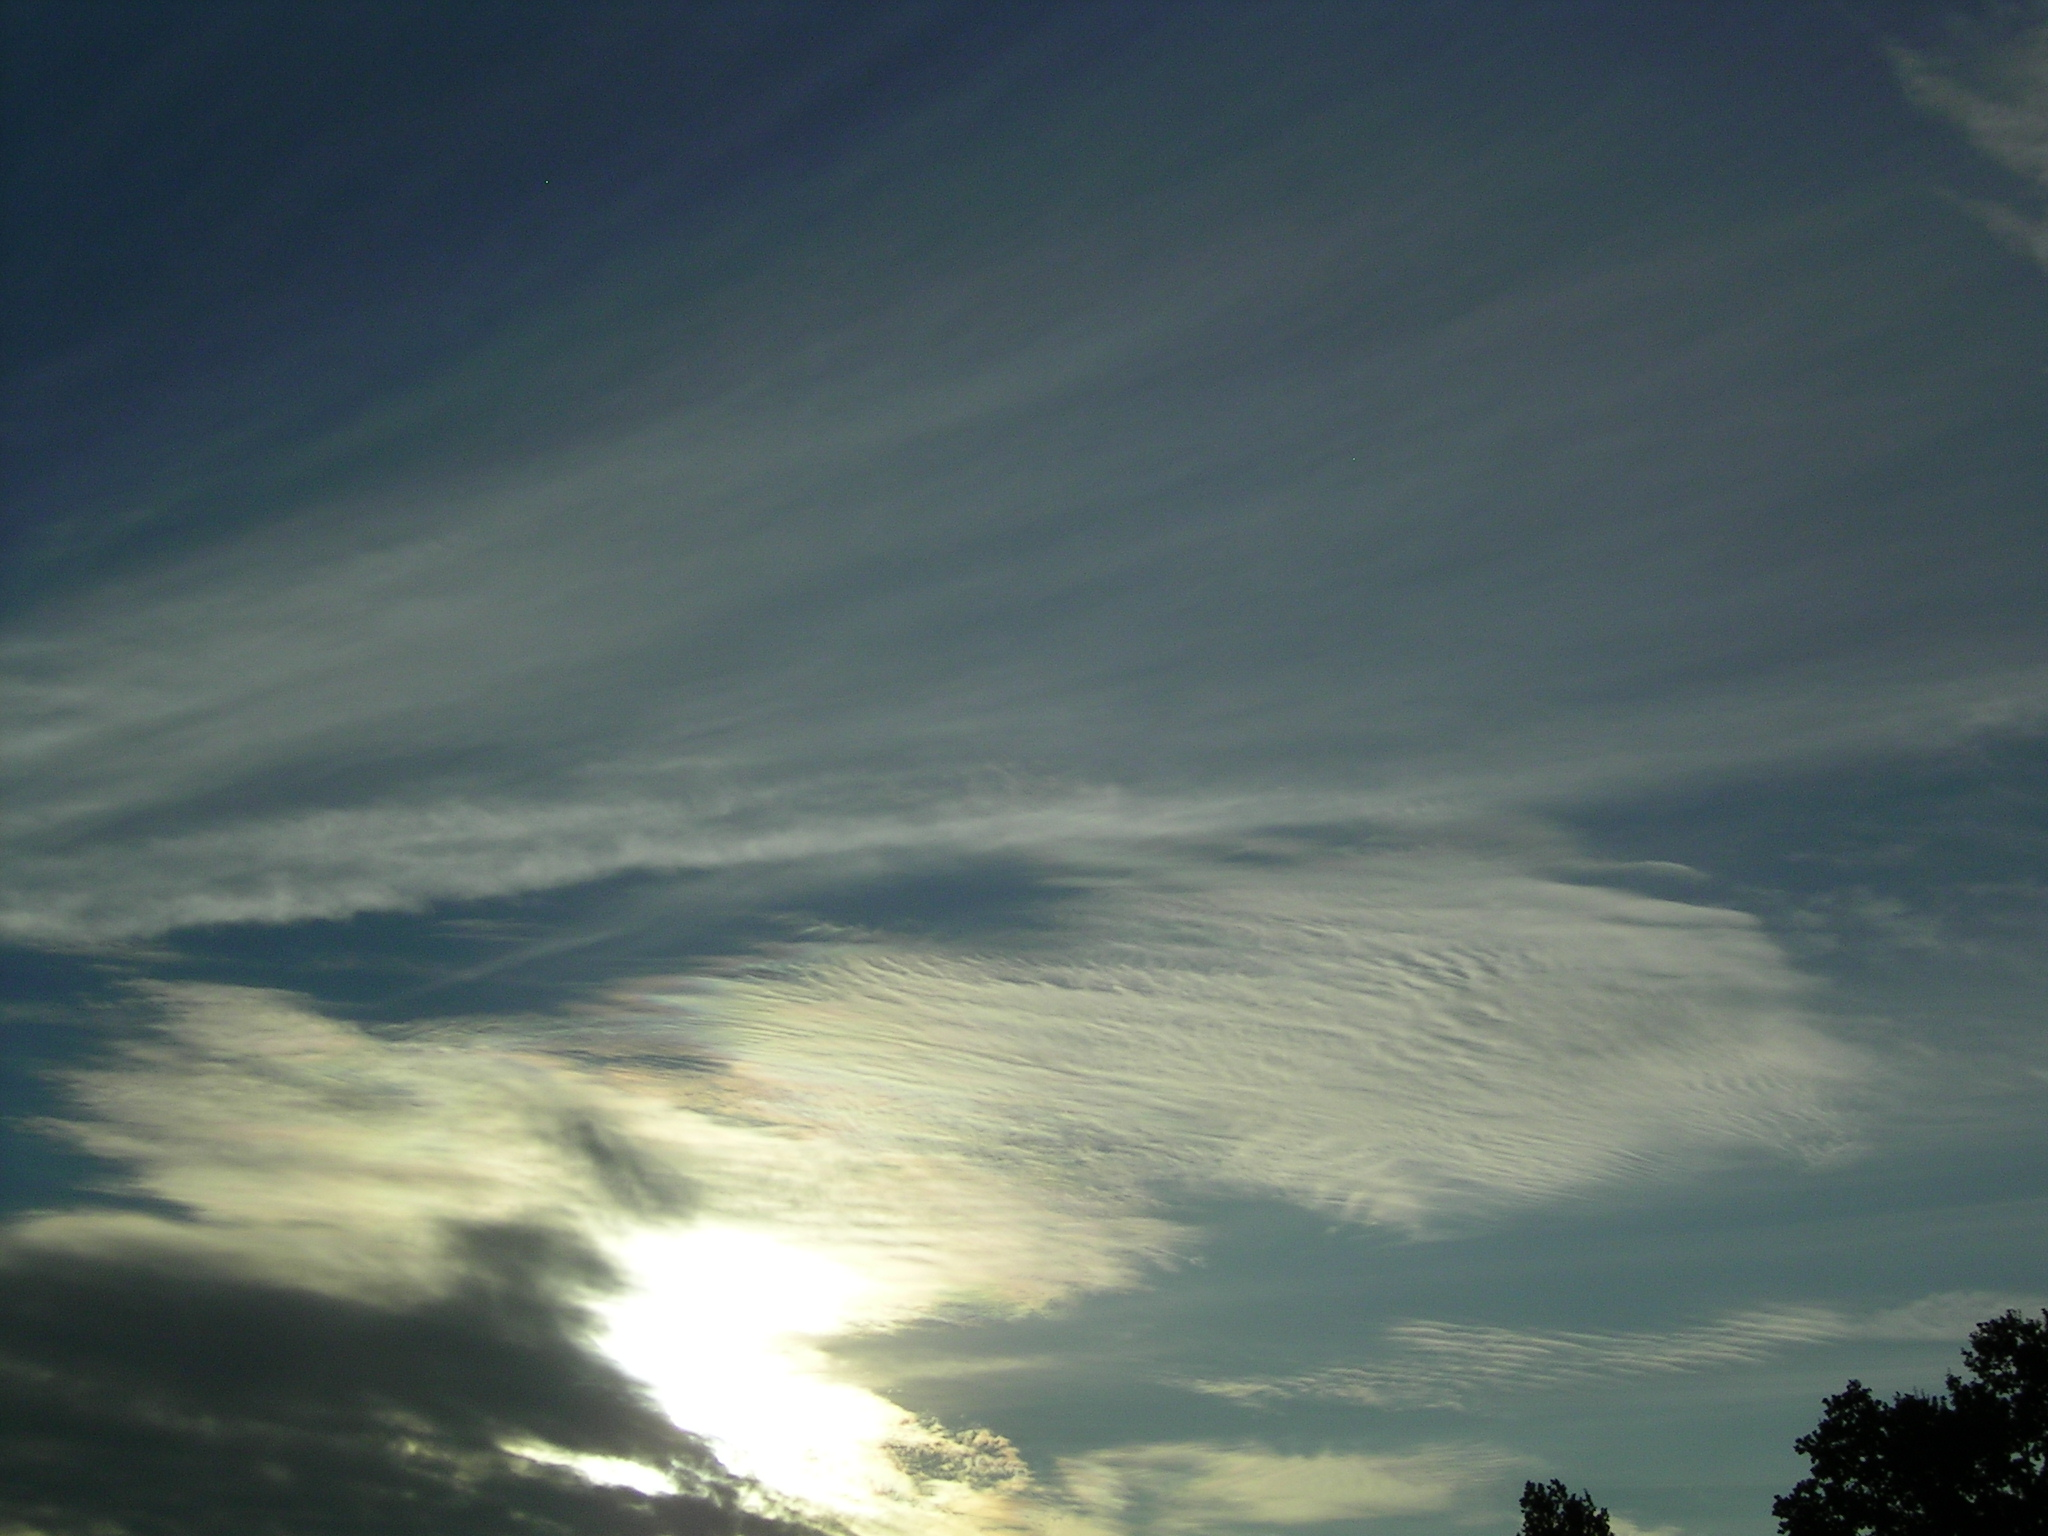 http://upload.wikimedia.org/wikipedia/commons/6/6e/Long_Cirrostratus_with_Cs_undulatus.JPG